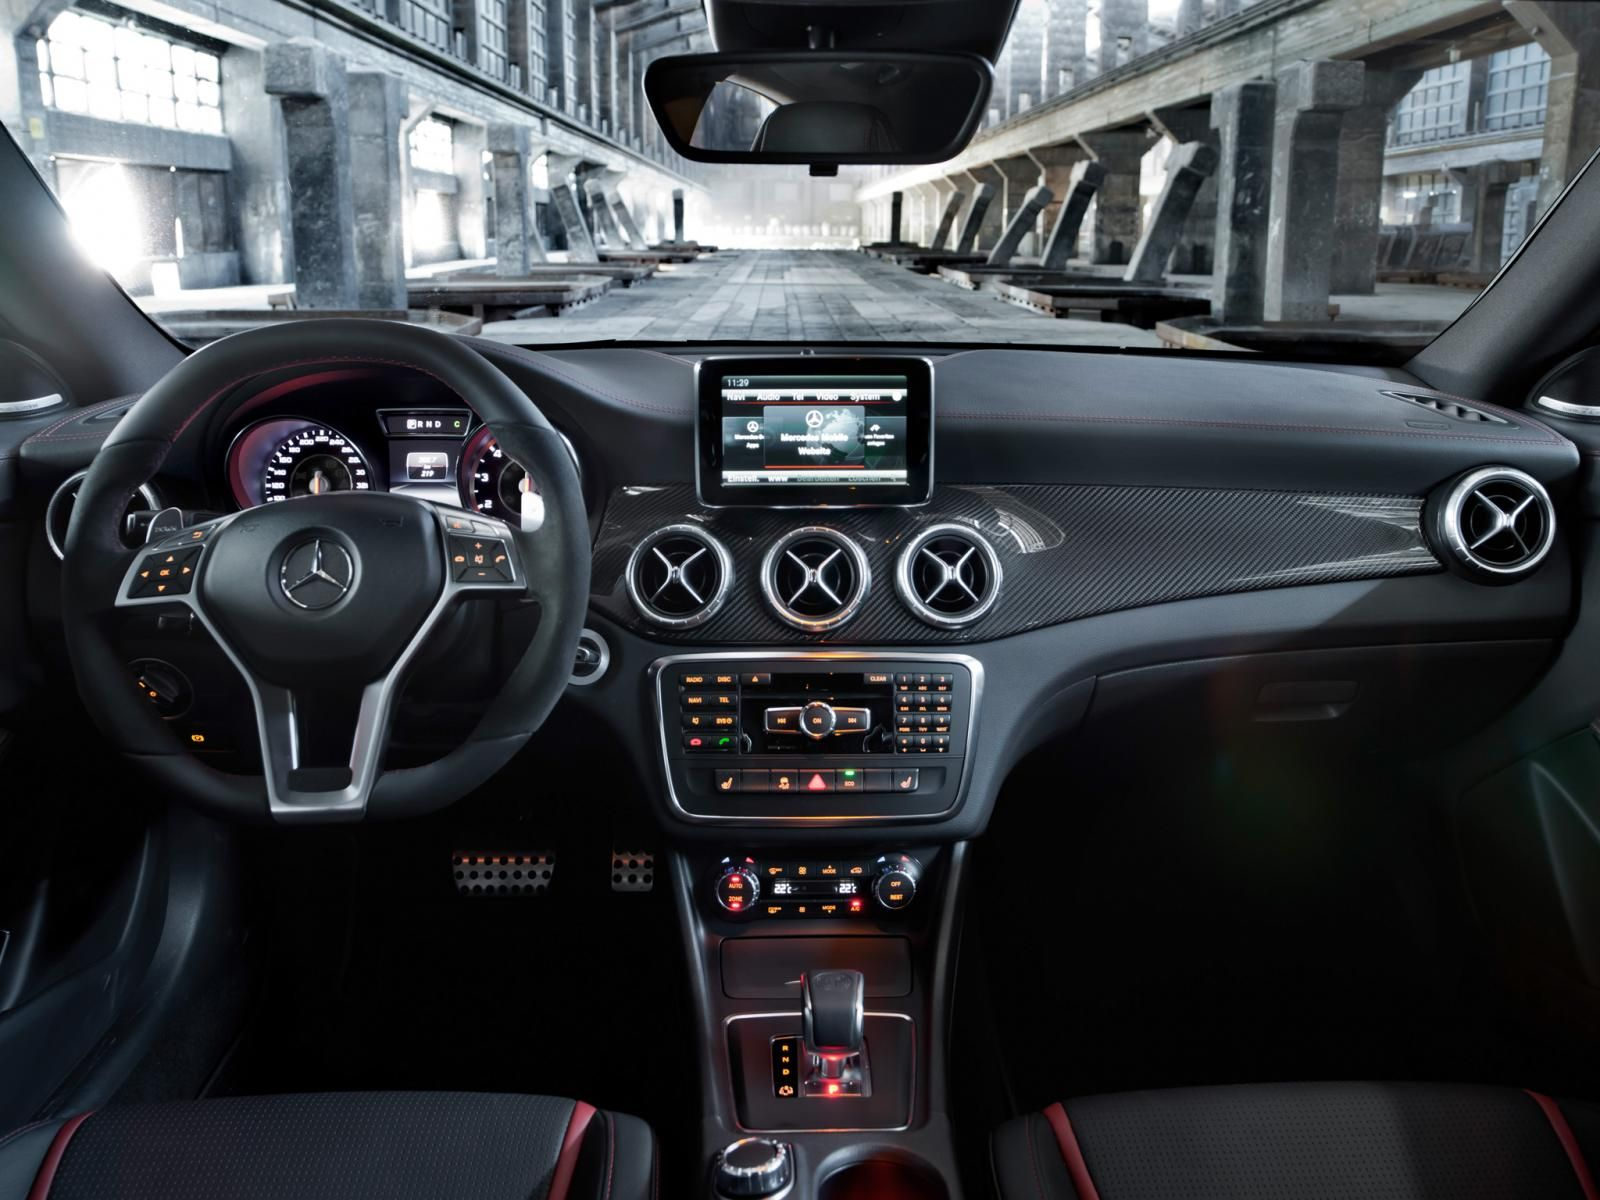 mercedes benz cla 2013 interior march 25 2013 at 1600 1200 in all new mercedes benz cla 45 amg